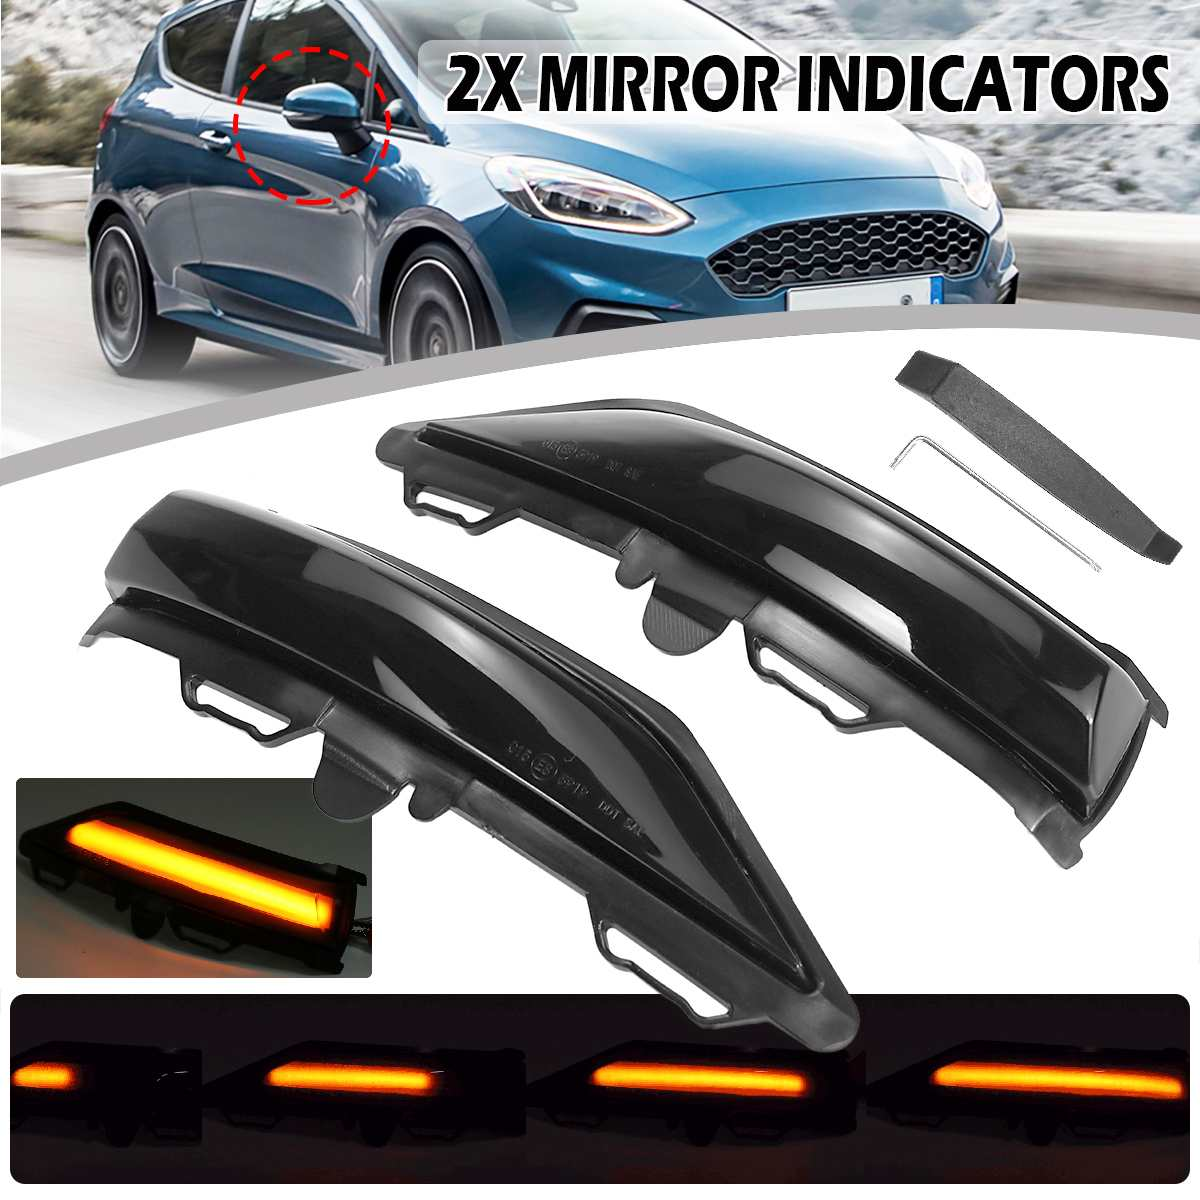 2pcs LED Side Wing Rearview Mirror Dynamic Indicator Flowing Turn Signal Blinker Repeater Light For Ford For Fiesta MK8 19+ Mk7